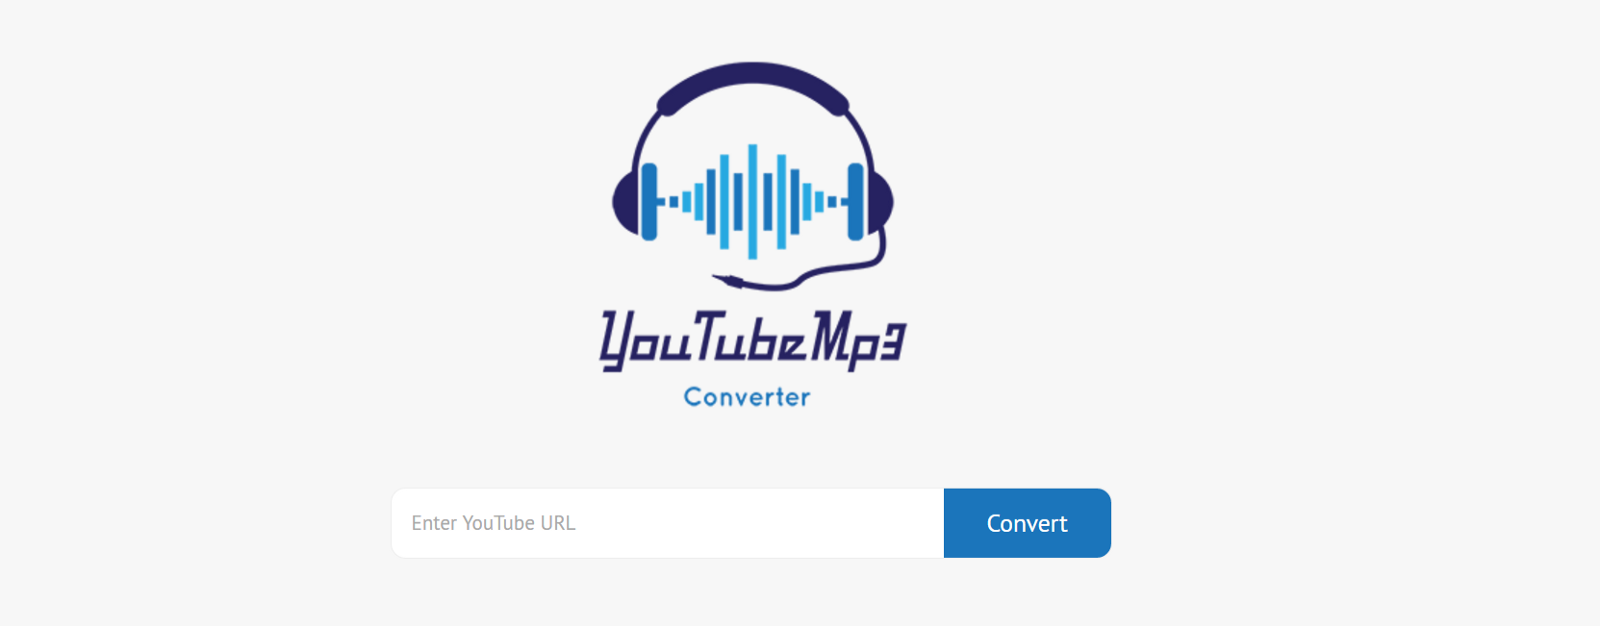 convert youtube videos to mp3 online